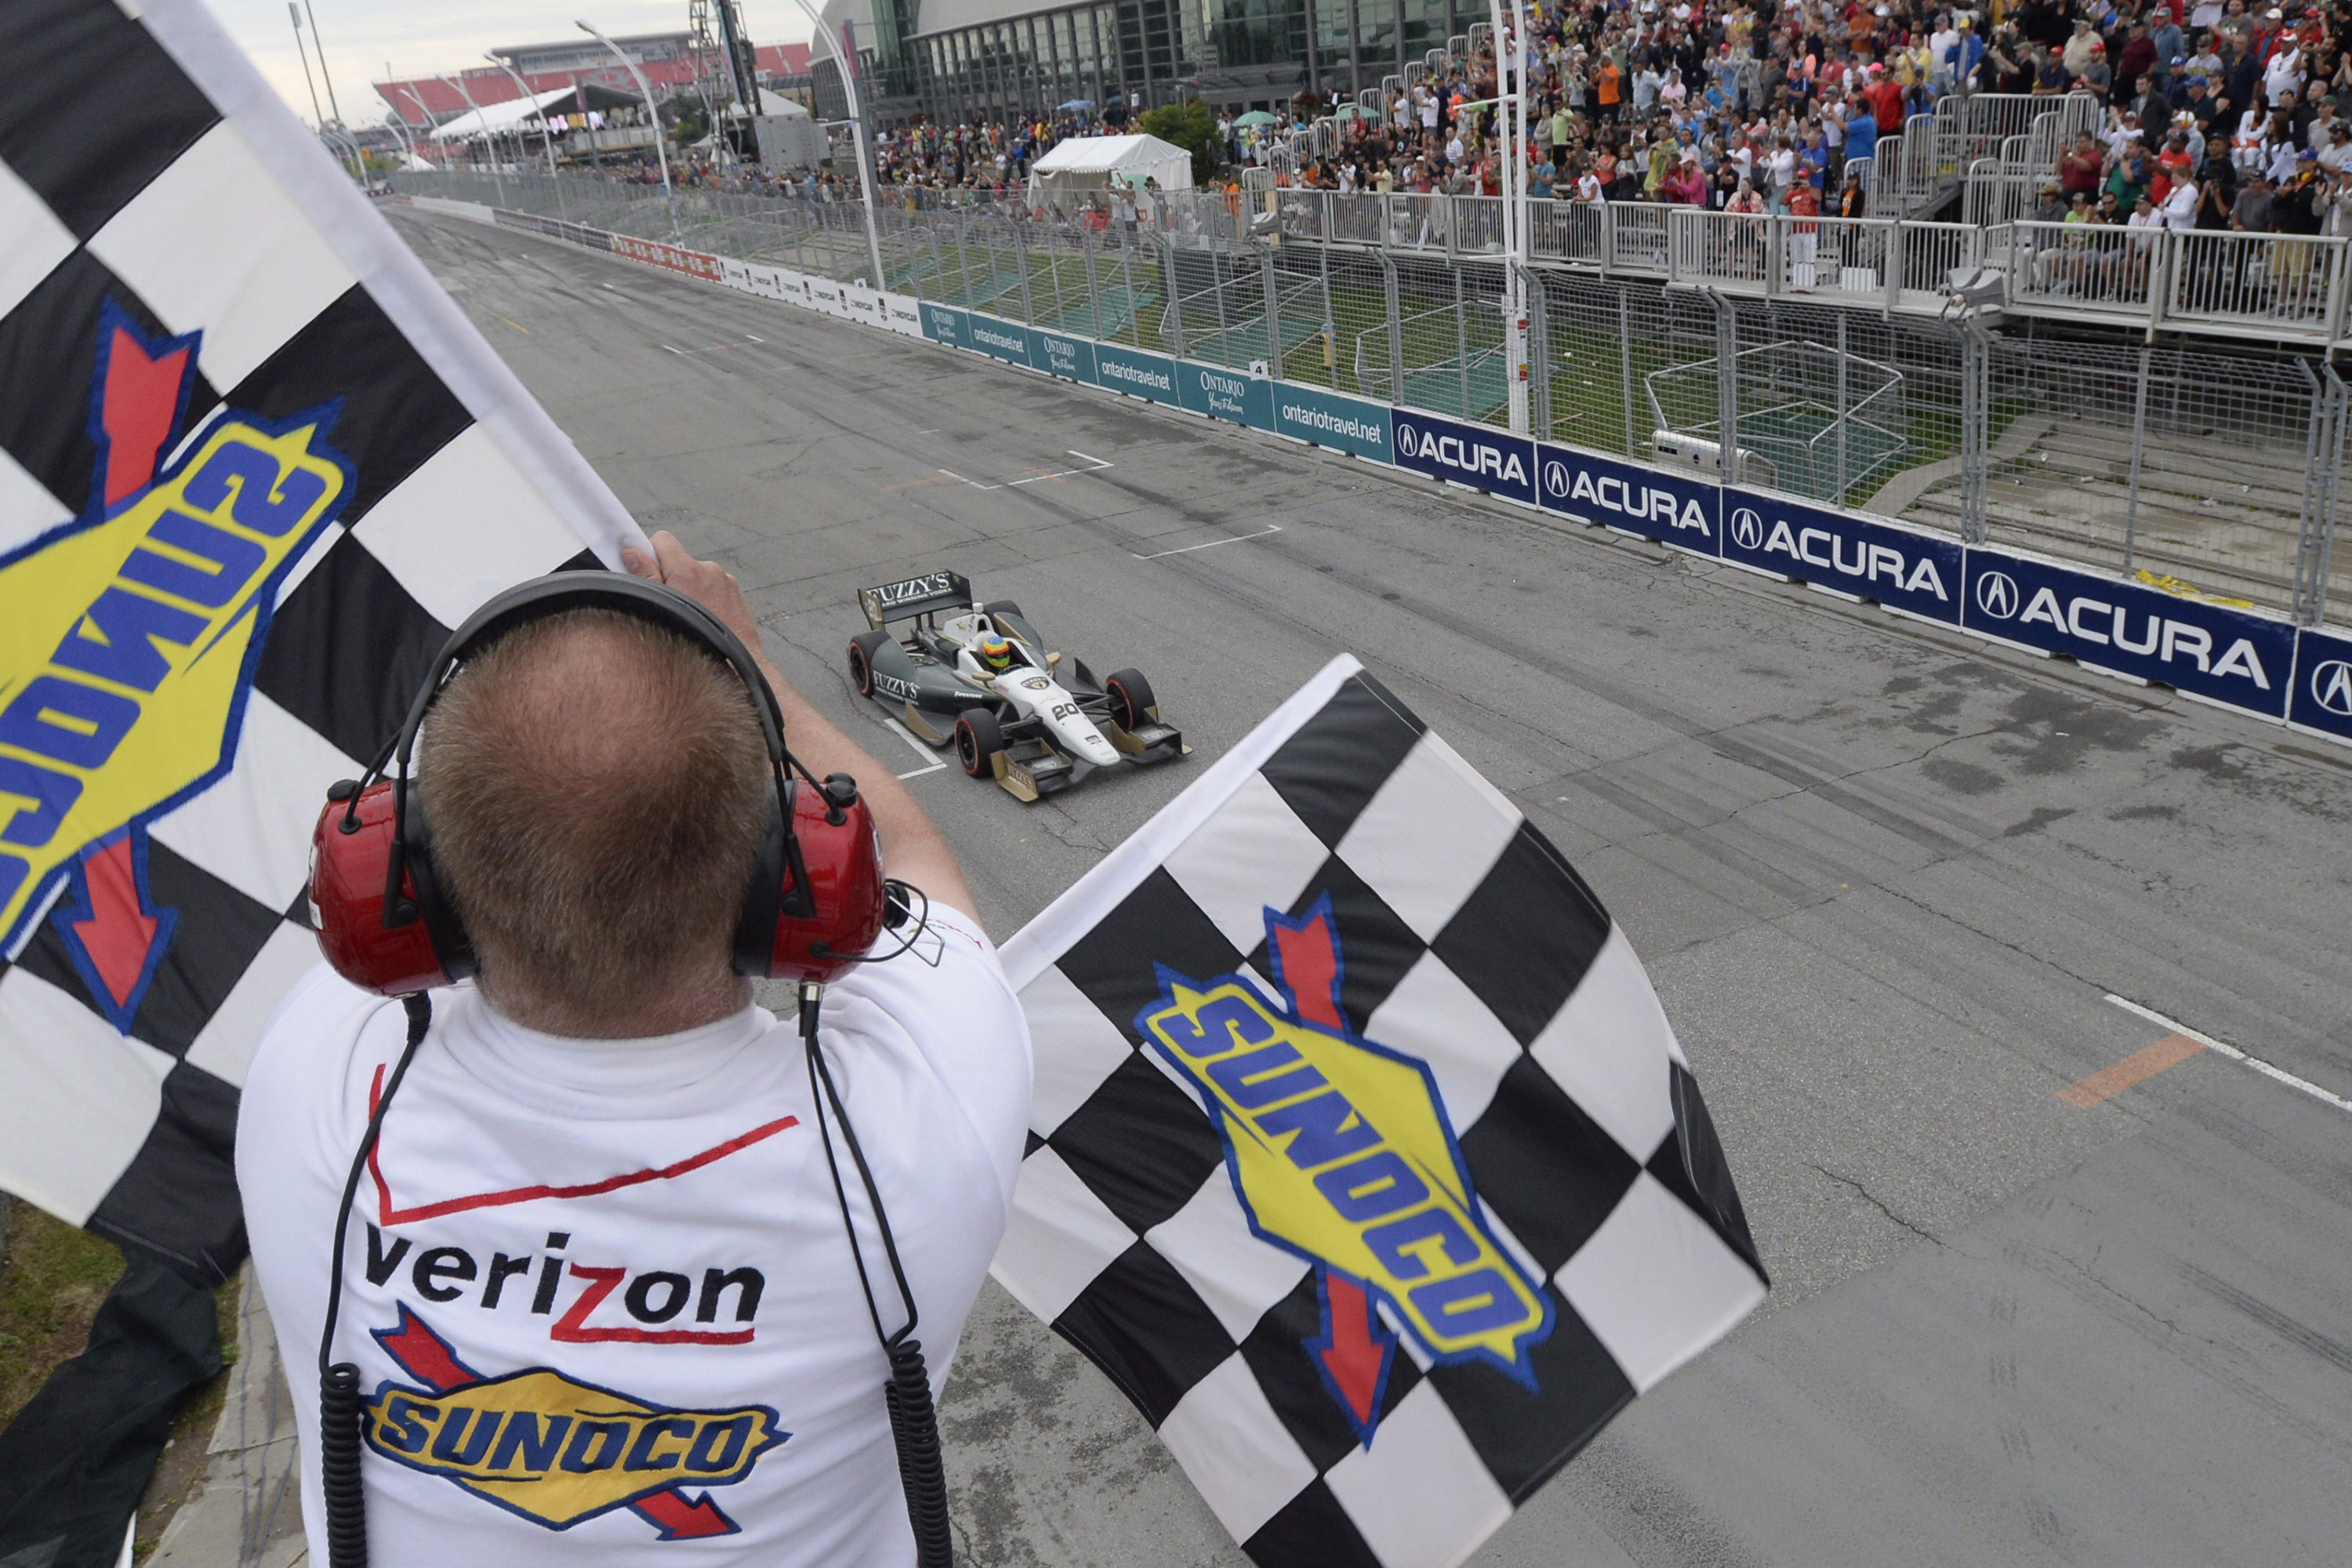 Mike Conway takes the checkered flag to win the second race of the day at the Toronto Indy race on July 20, 2014. THE CANADIAN PRESS/Frank Gunn